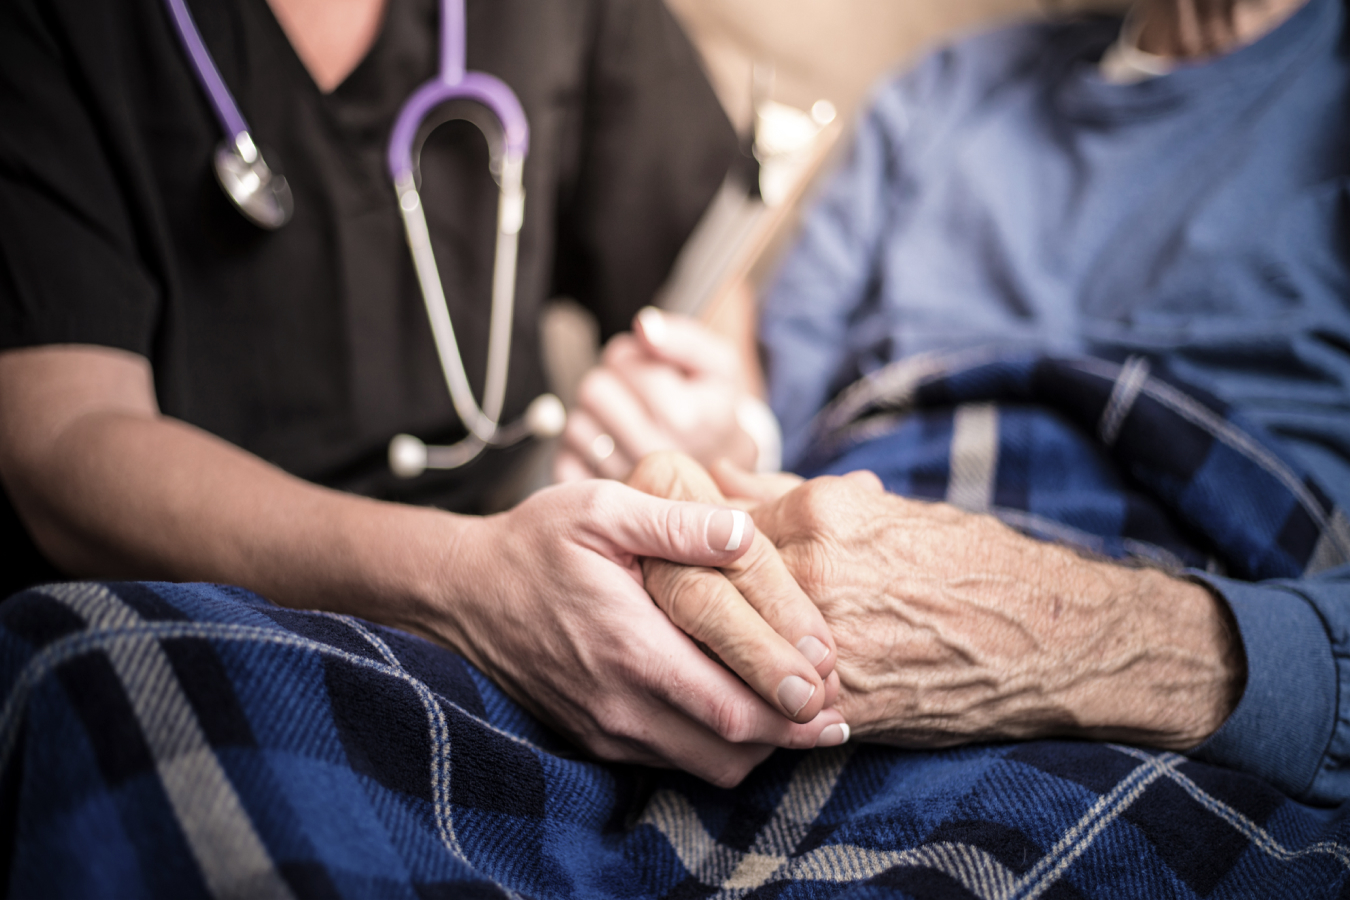 A Health Care Worker Comforting a Patient at Hospice Halifax